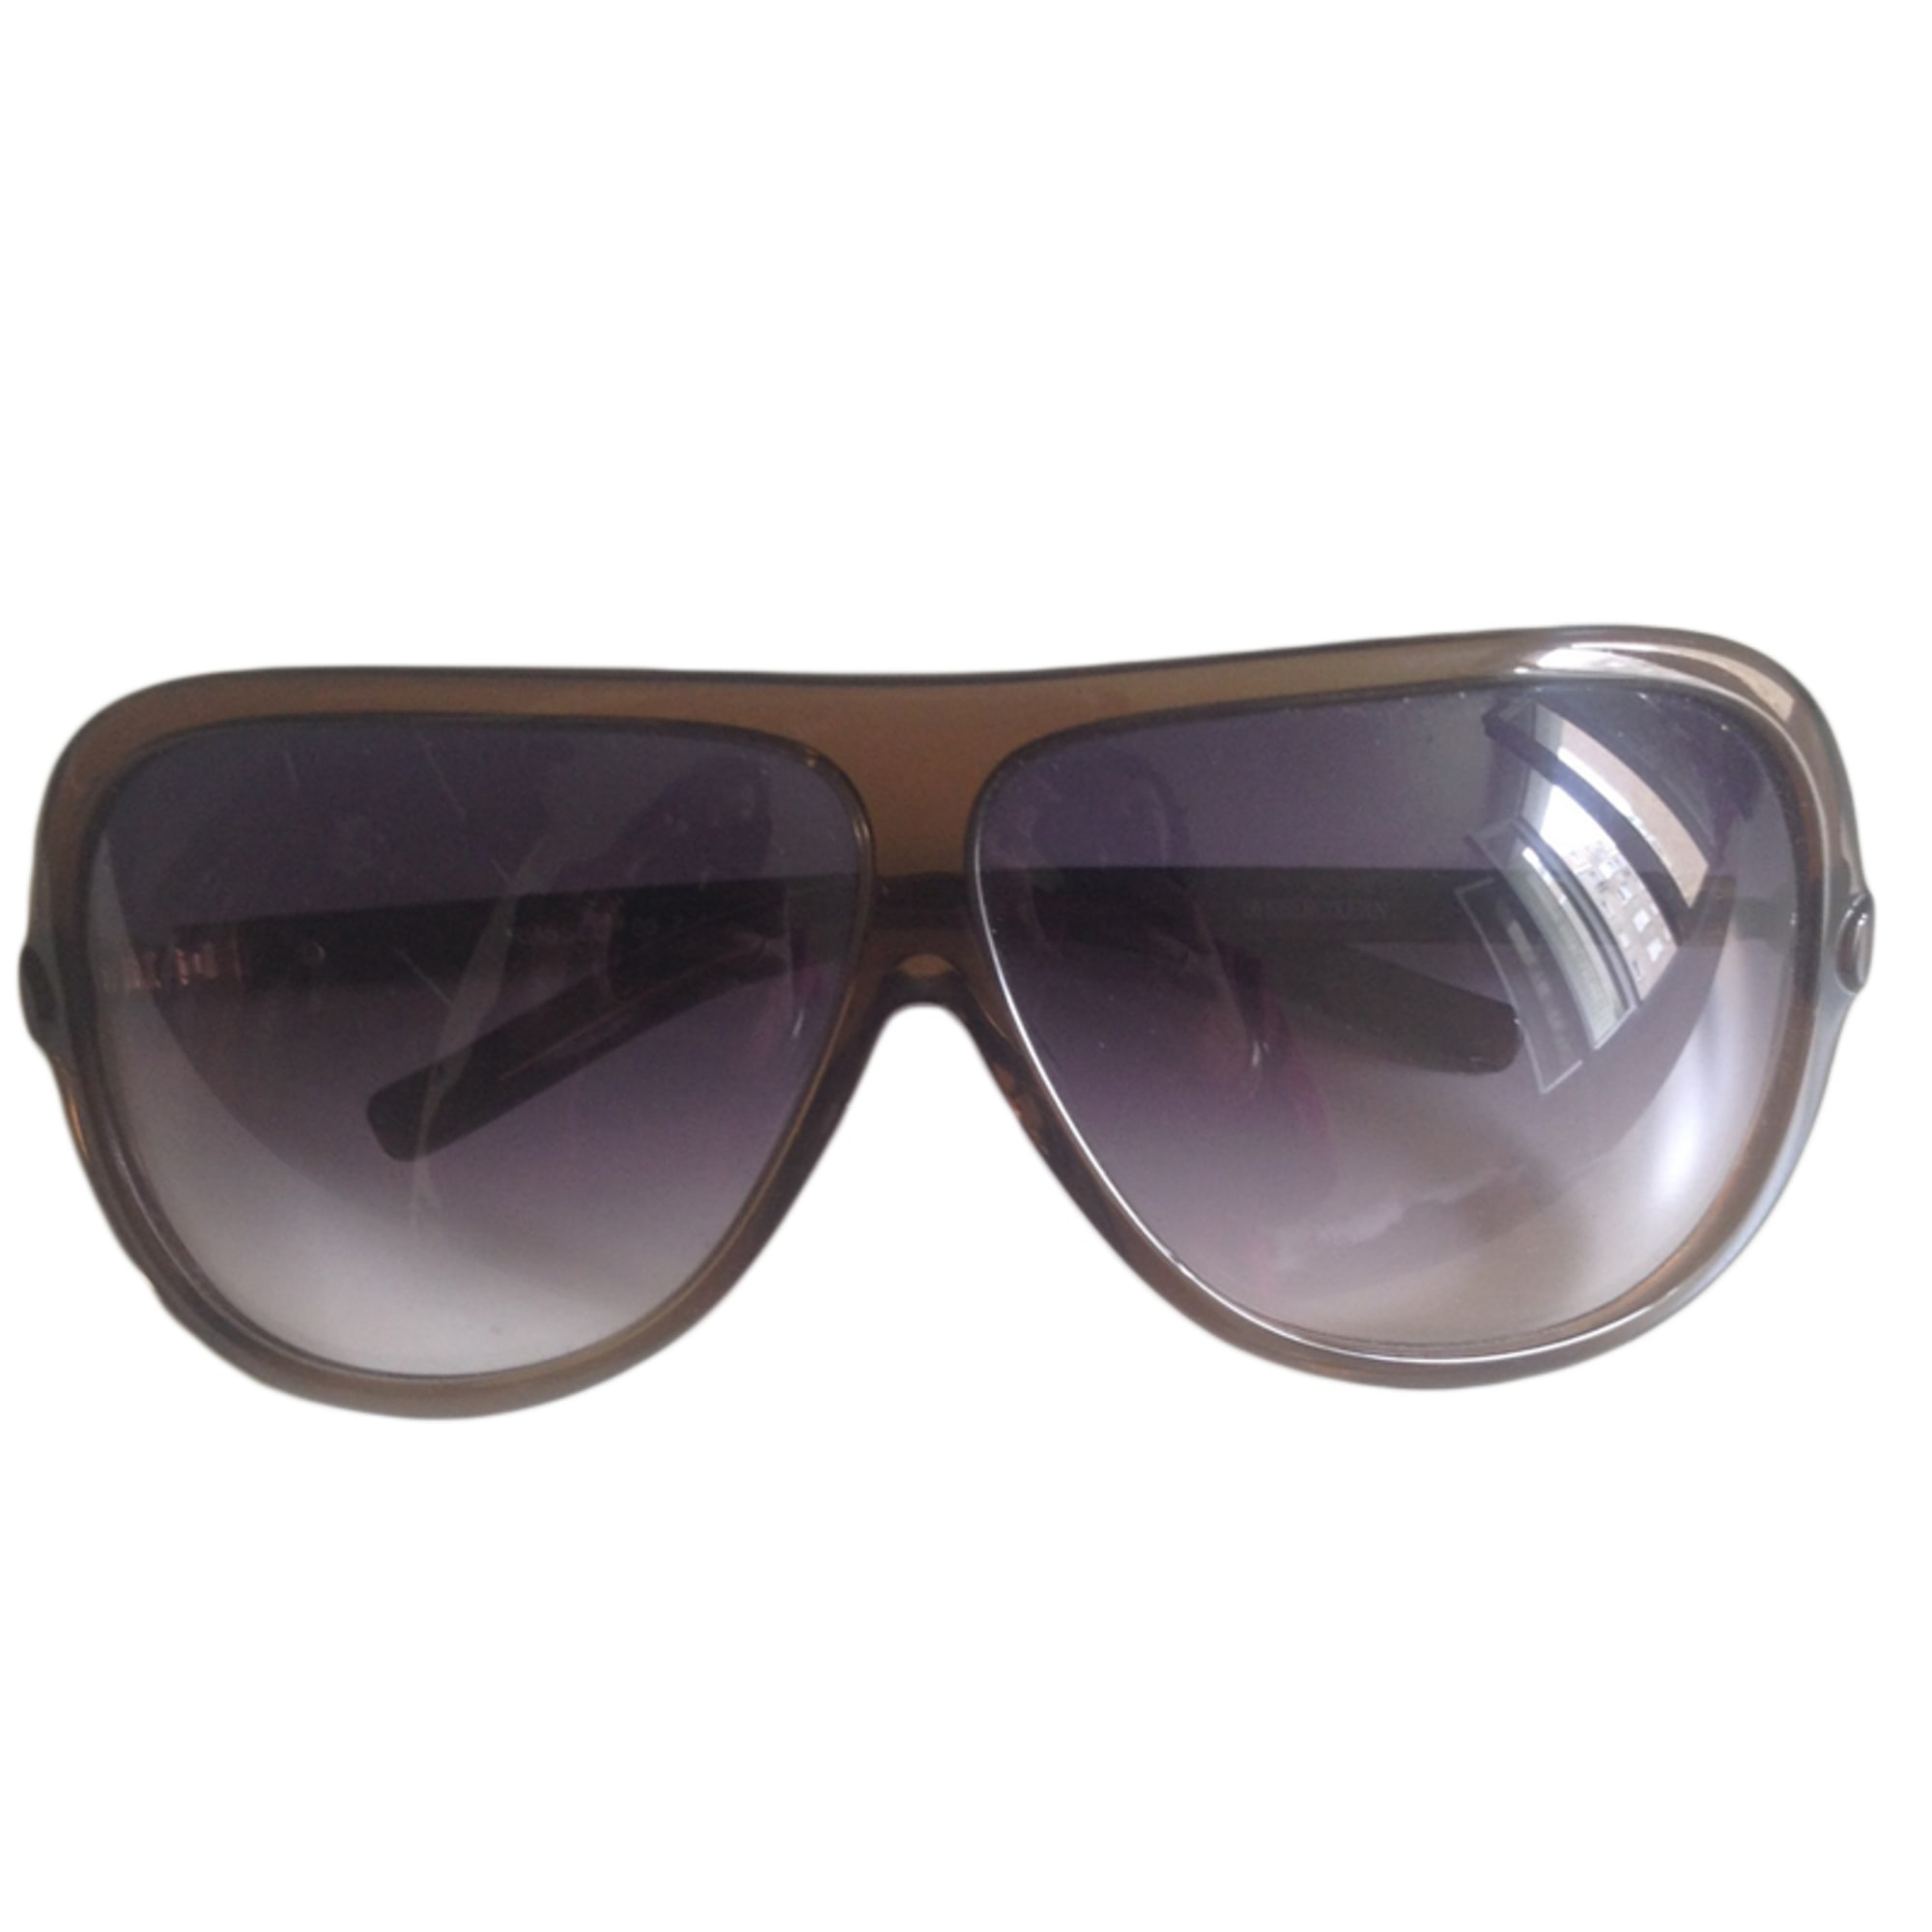 5bce355a0400 Sunglasses DYRBERG KERN brown - 3621405